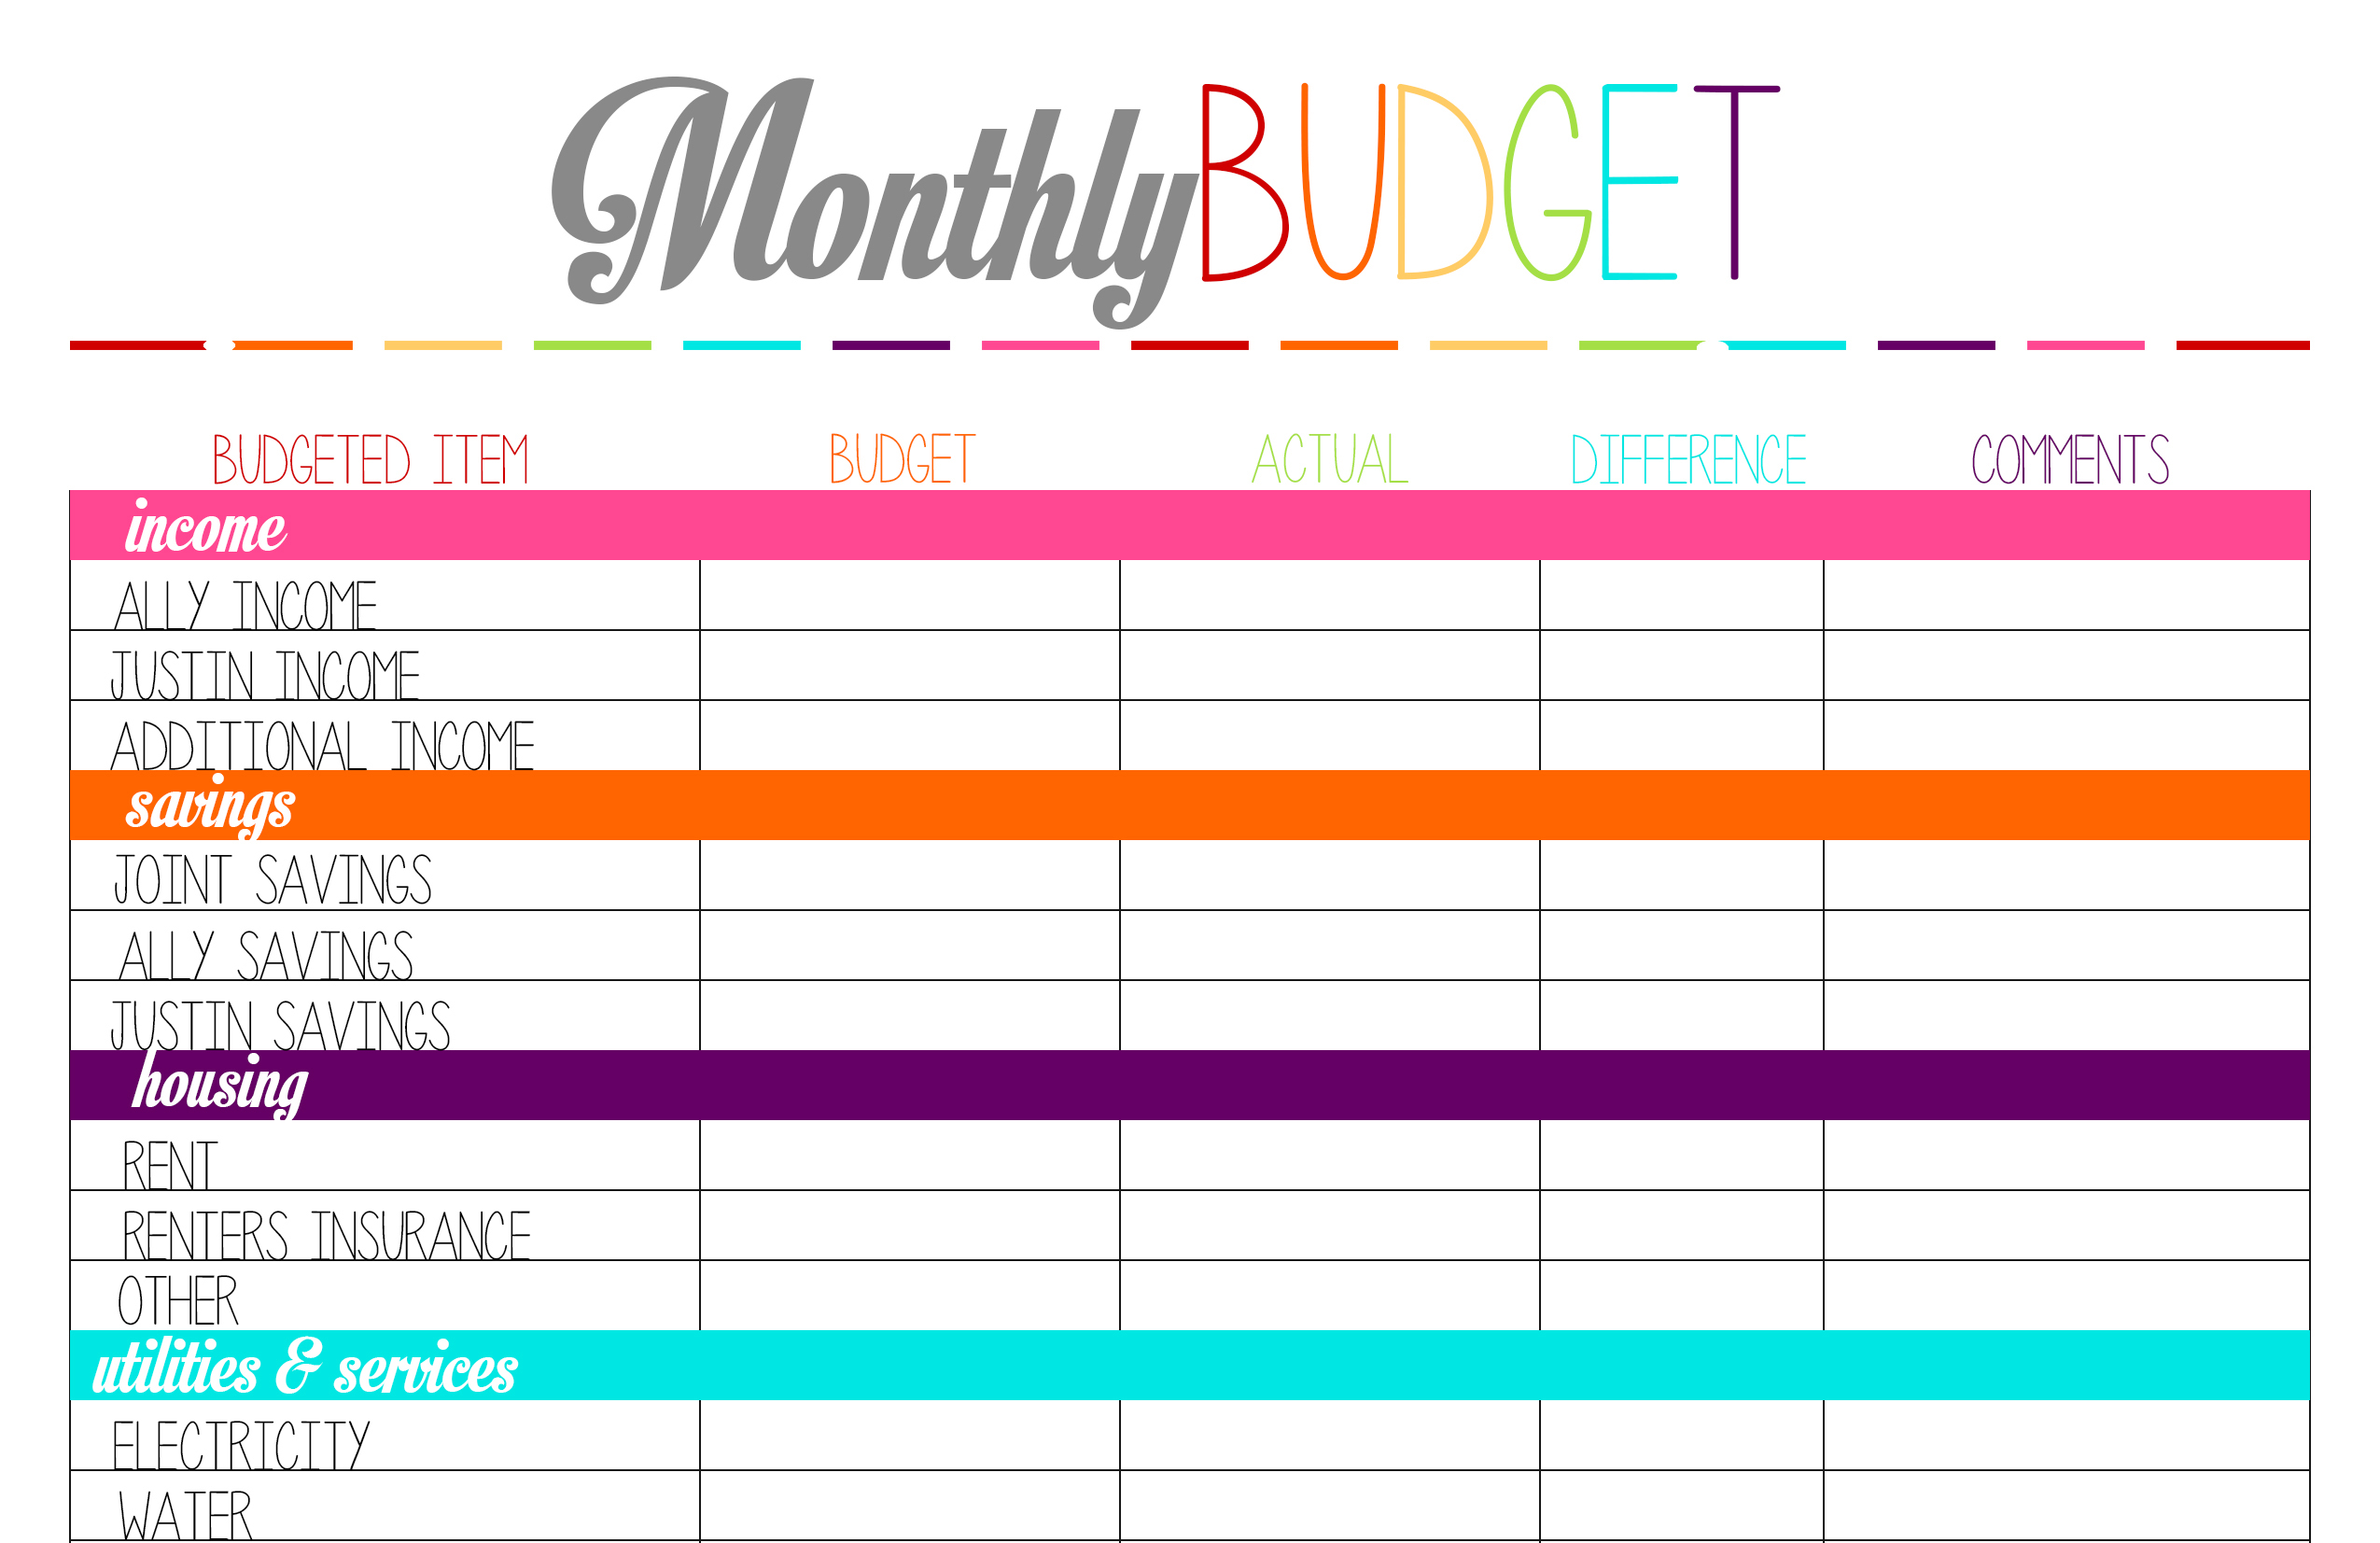 Worksheets Home Budget Worksheets home budget planning daway dabrowa co free printable tuesday worksheets ally jean planning